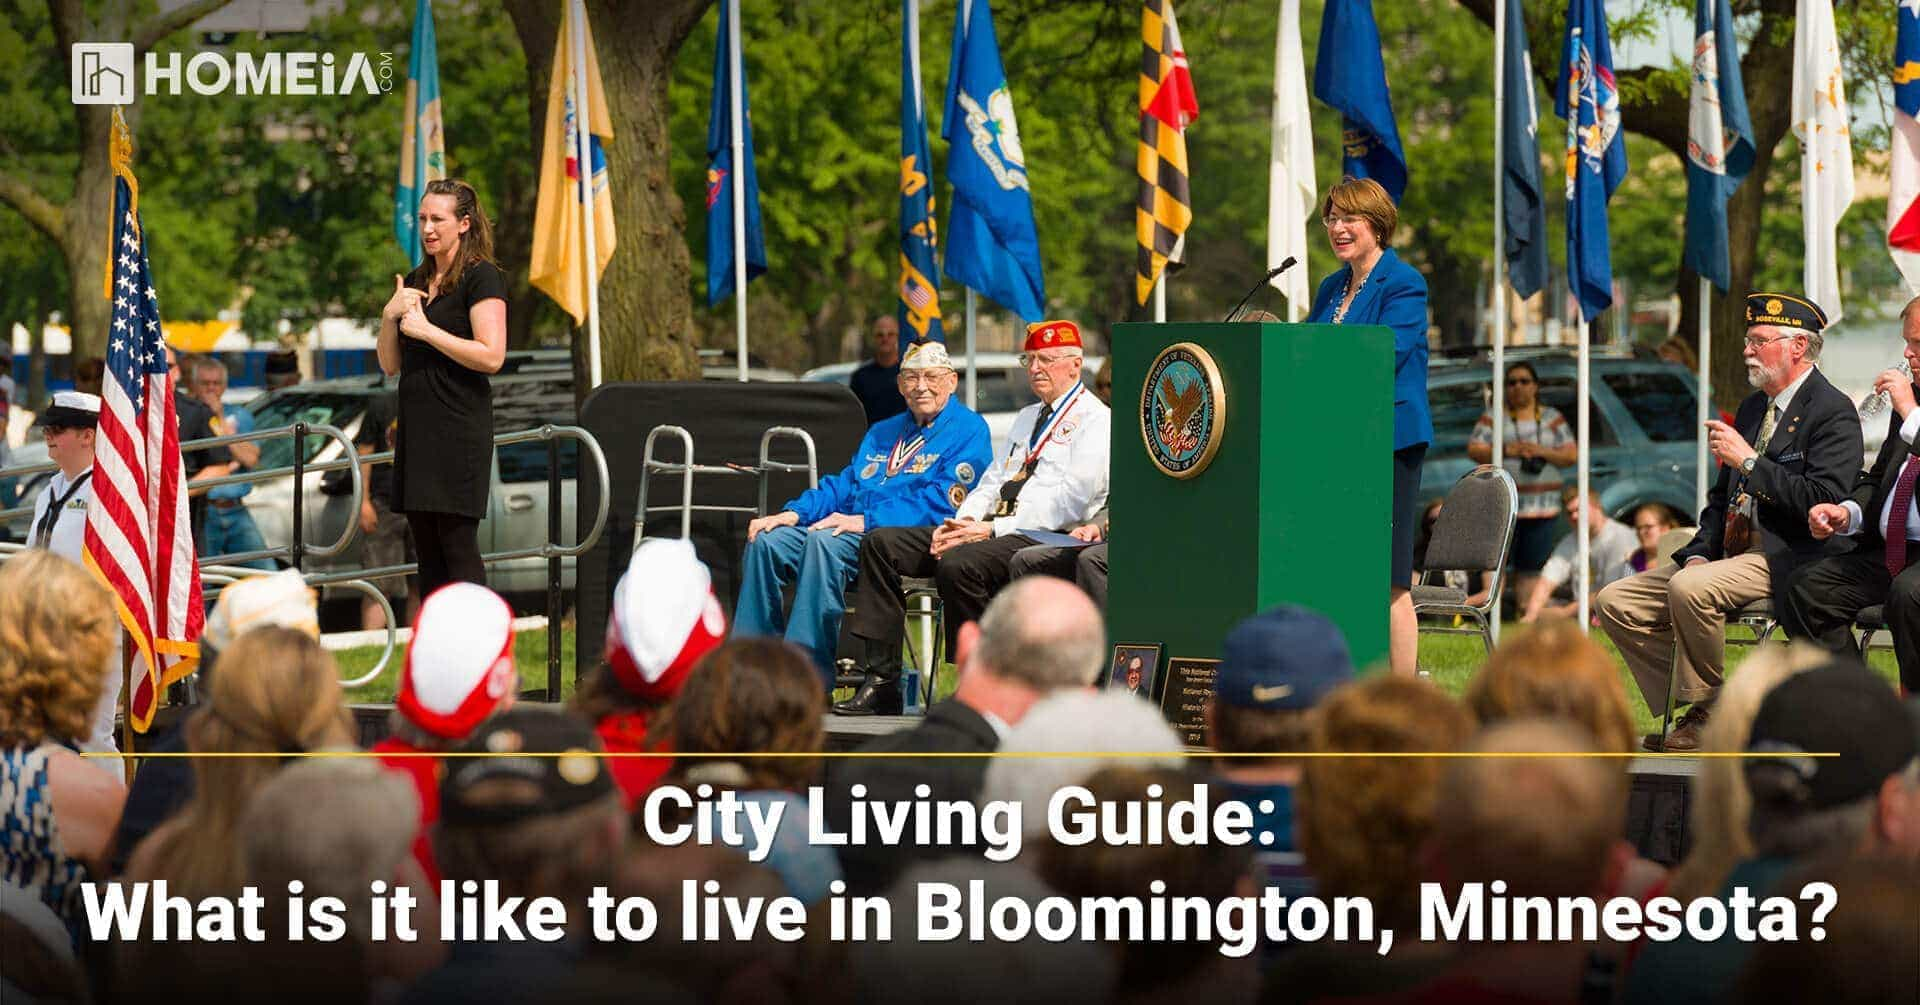 What is it like living in Bloomington, Minnesota?